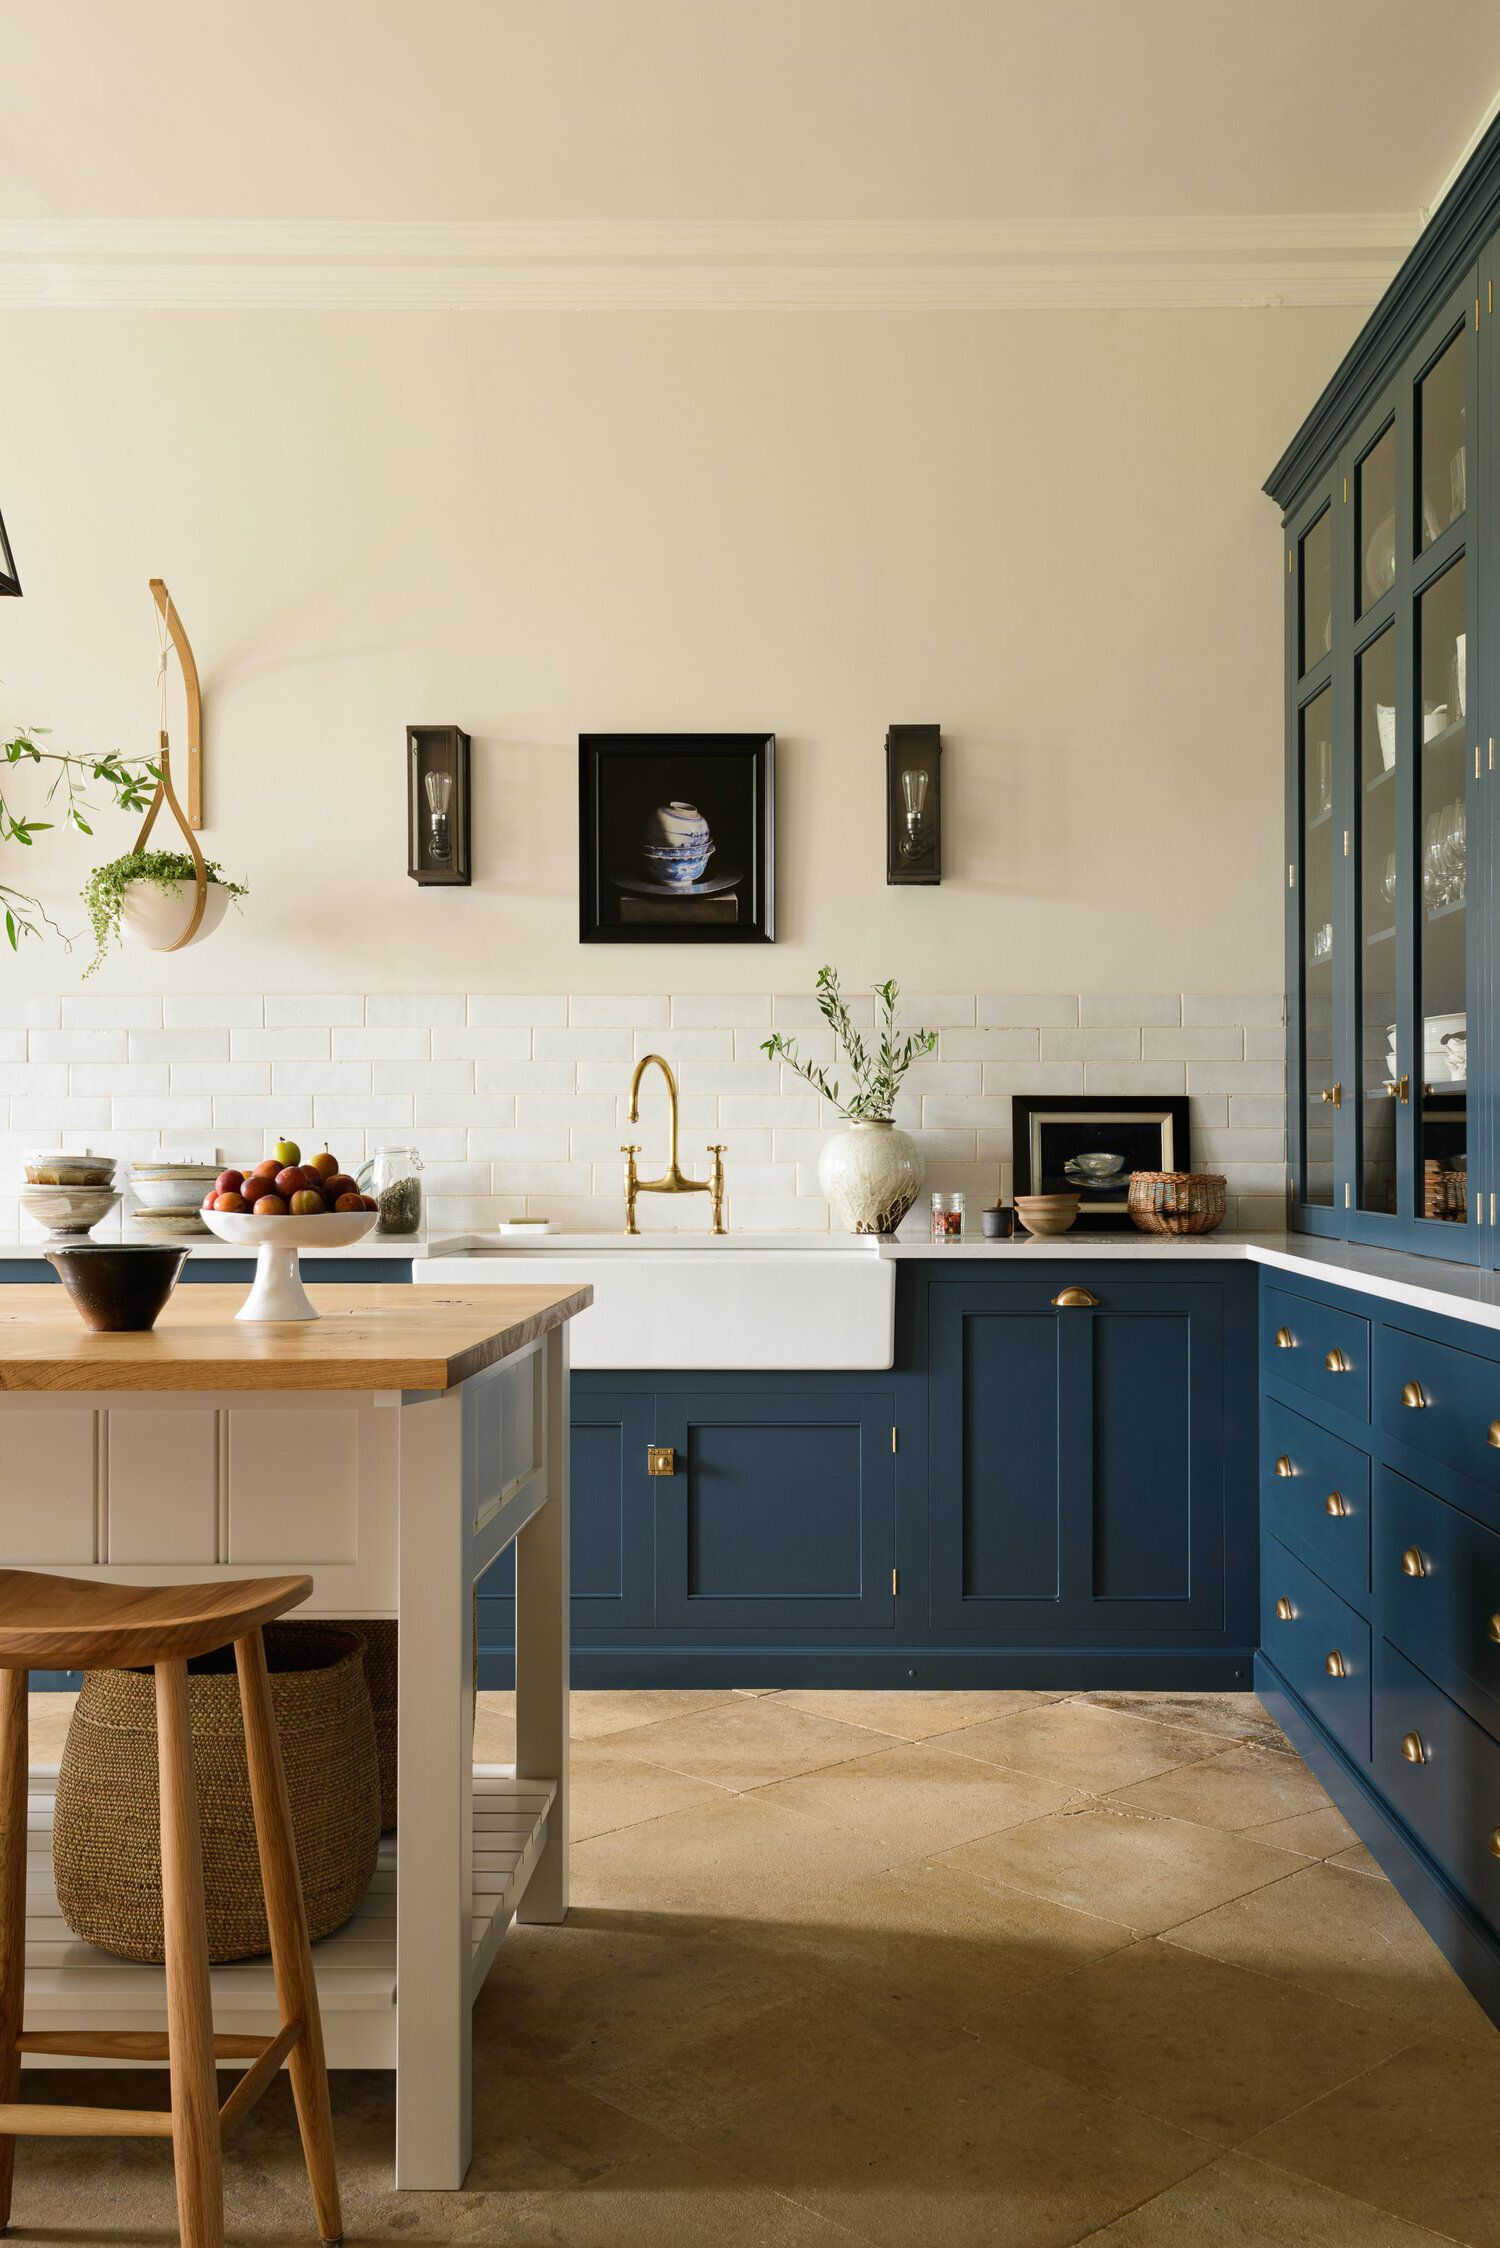 the color trends for 2020 are inspired by nature in 2020 devol kitchens kitchen design on kitchen decor trends id=73673